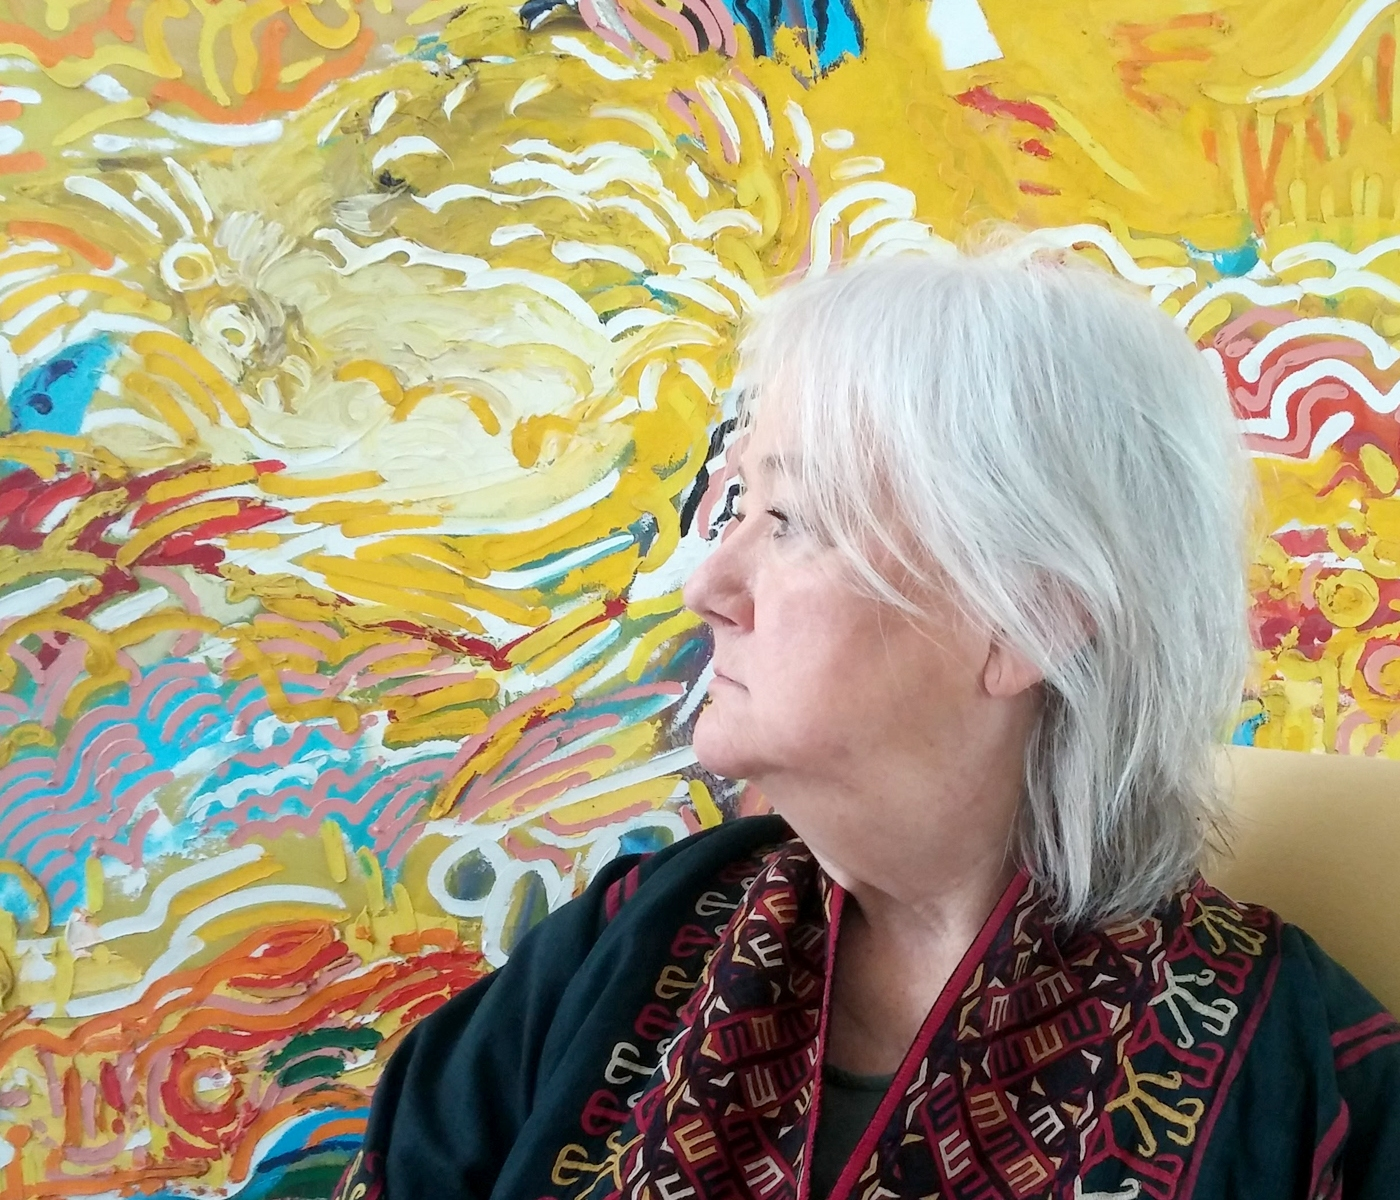 side profile of a seated woman with an abstract painting of swirling lines in the background